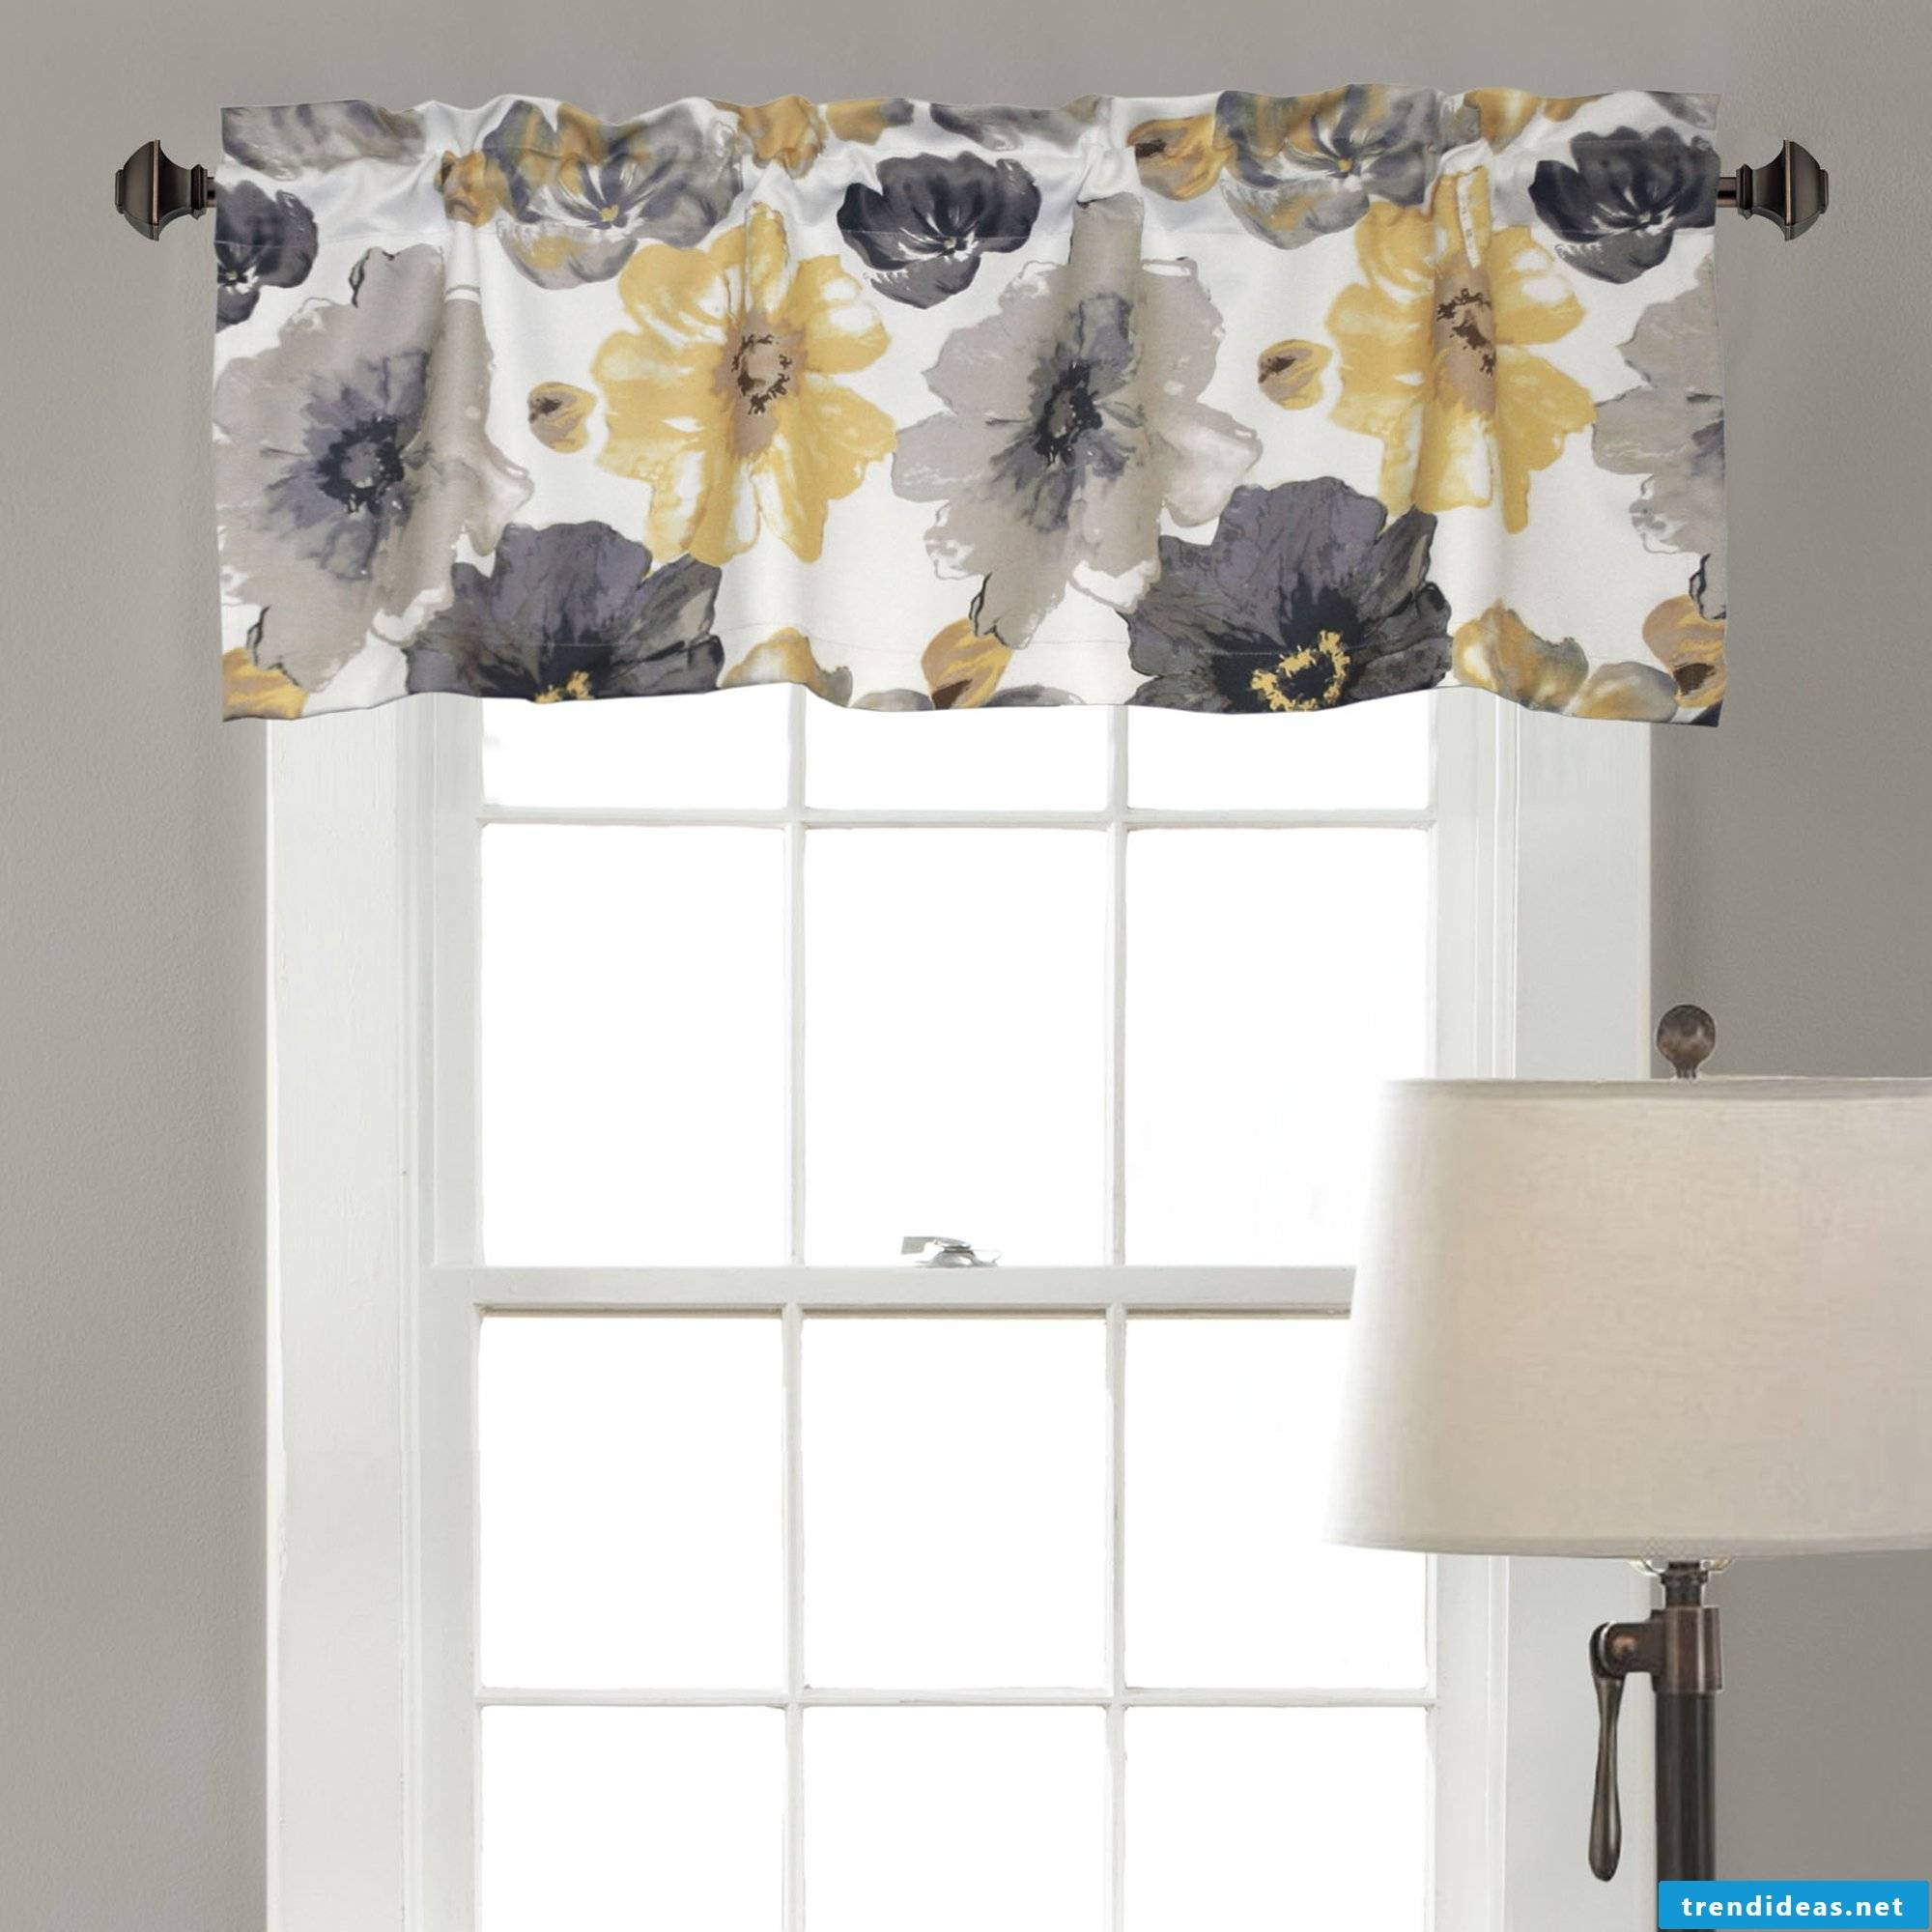 Sewing curtains made easy for more pep at home